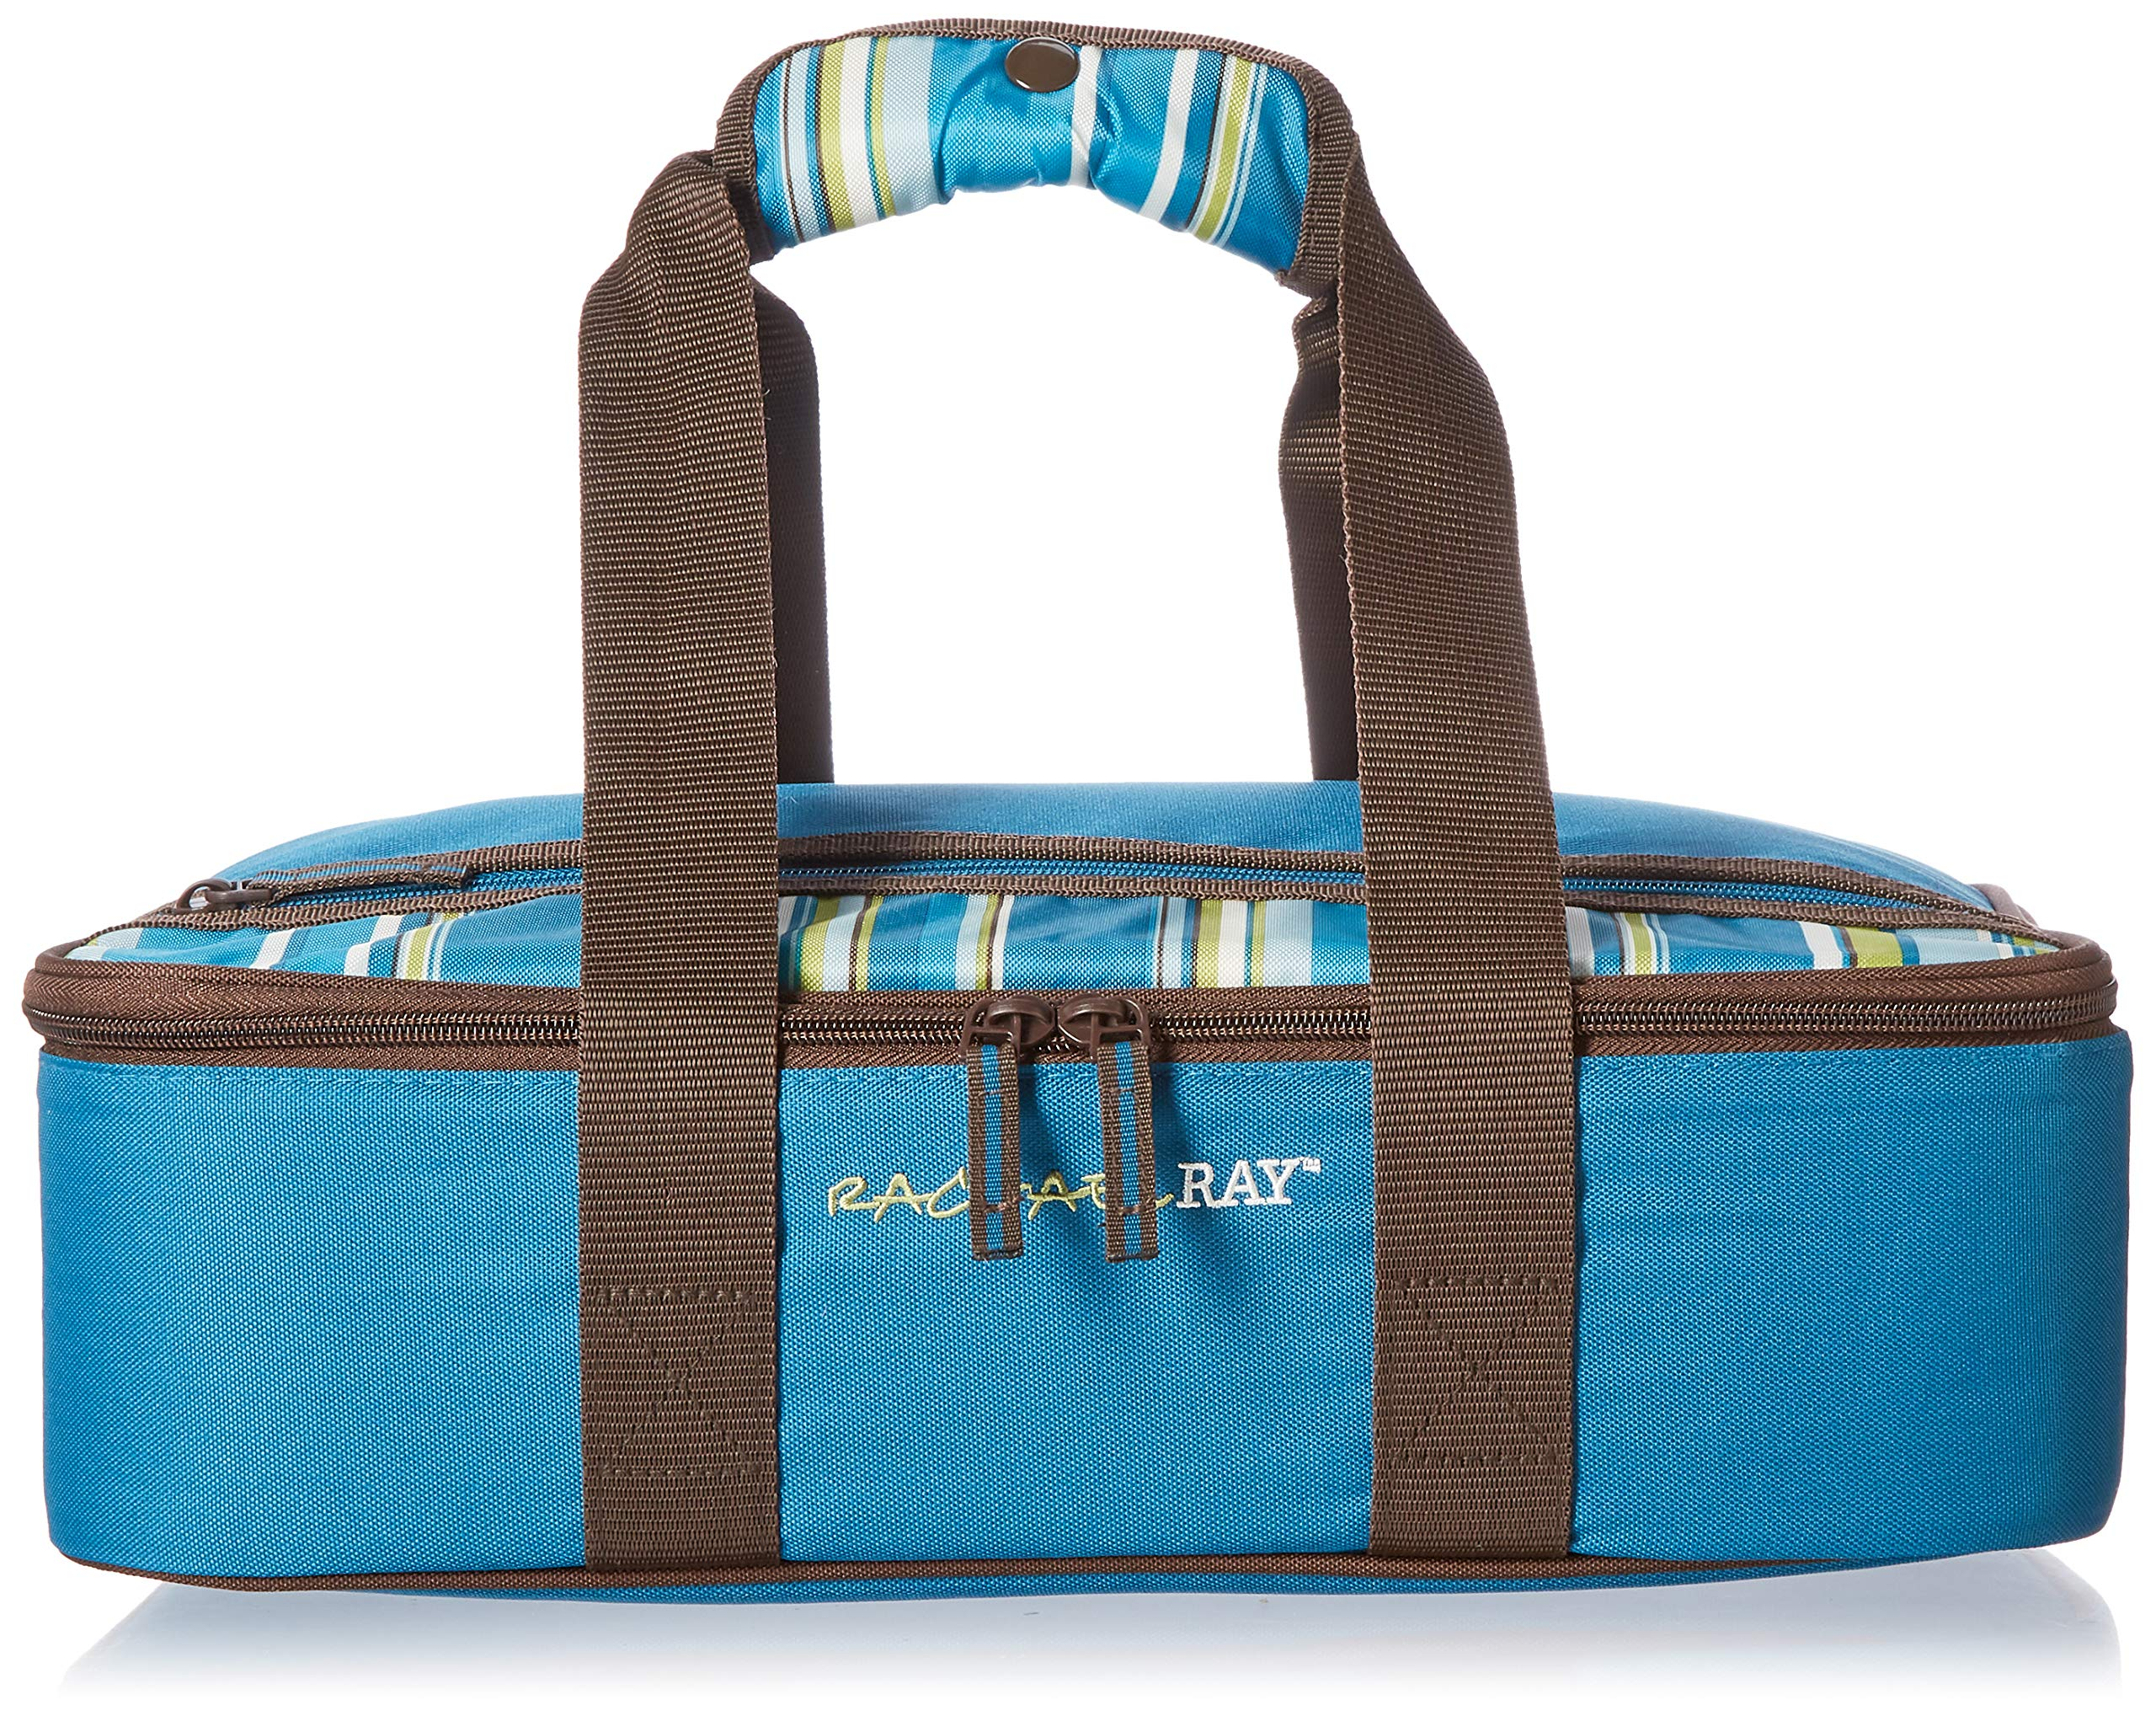 Rachael Ray Lasagna Lugger, Insulated Casserole Carrier for Potluck Parties, Picnics, Tailgates - Fits 9''x13'' Baking Dish, Marine Blue Stripes